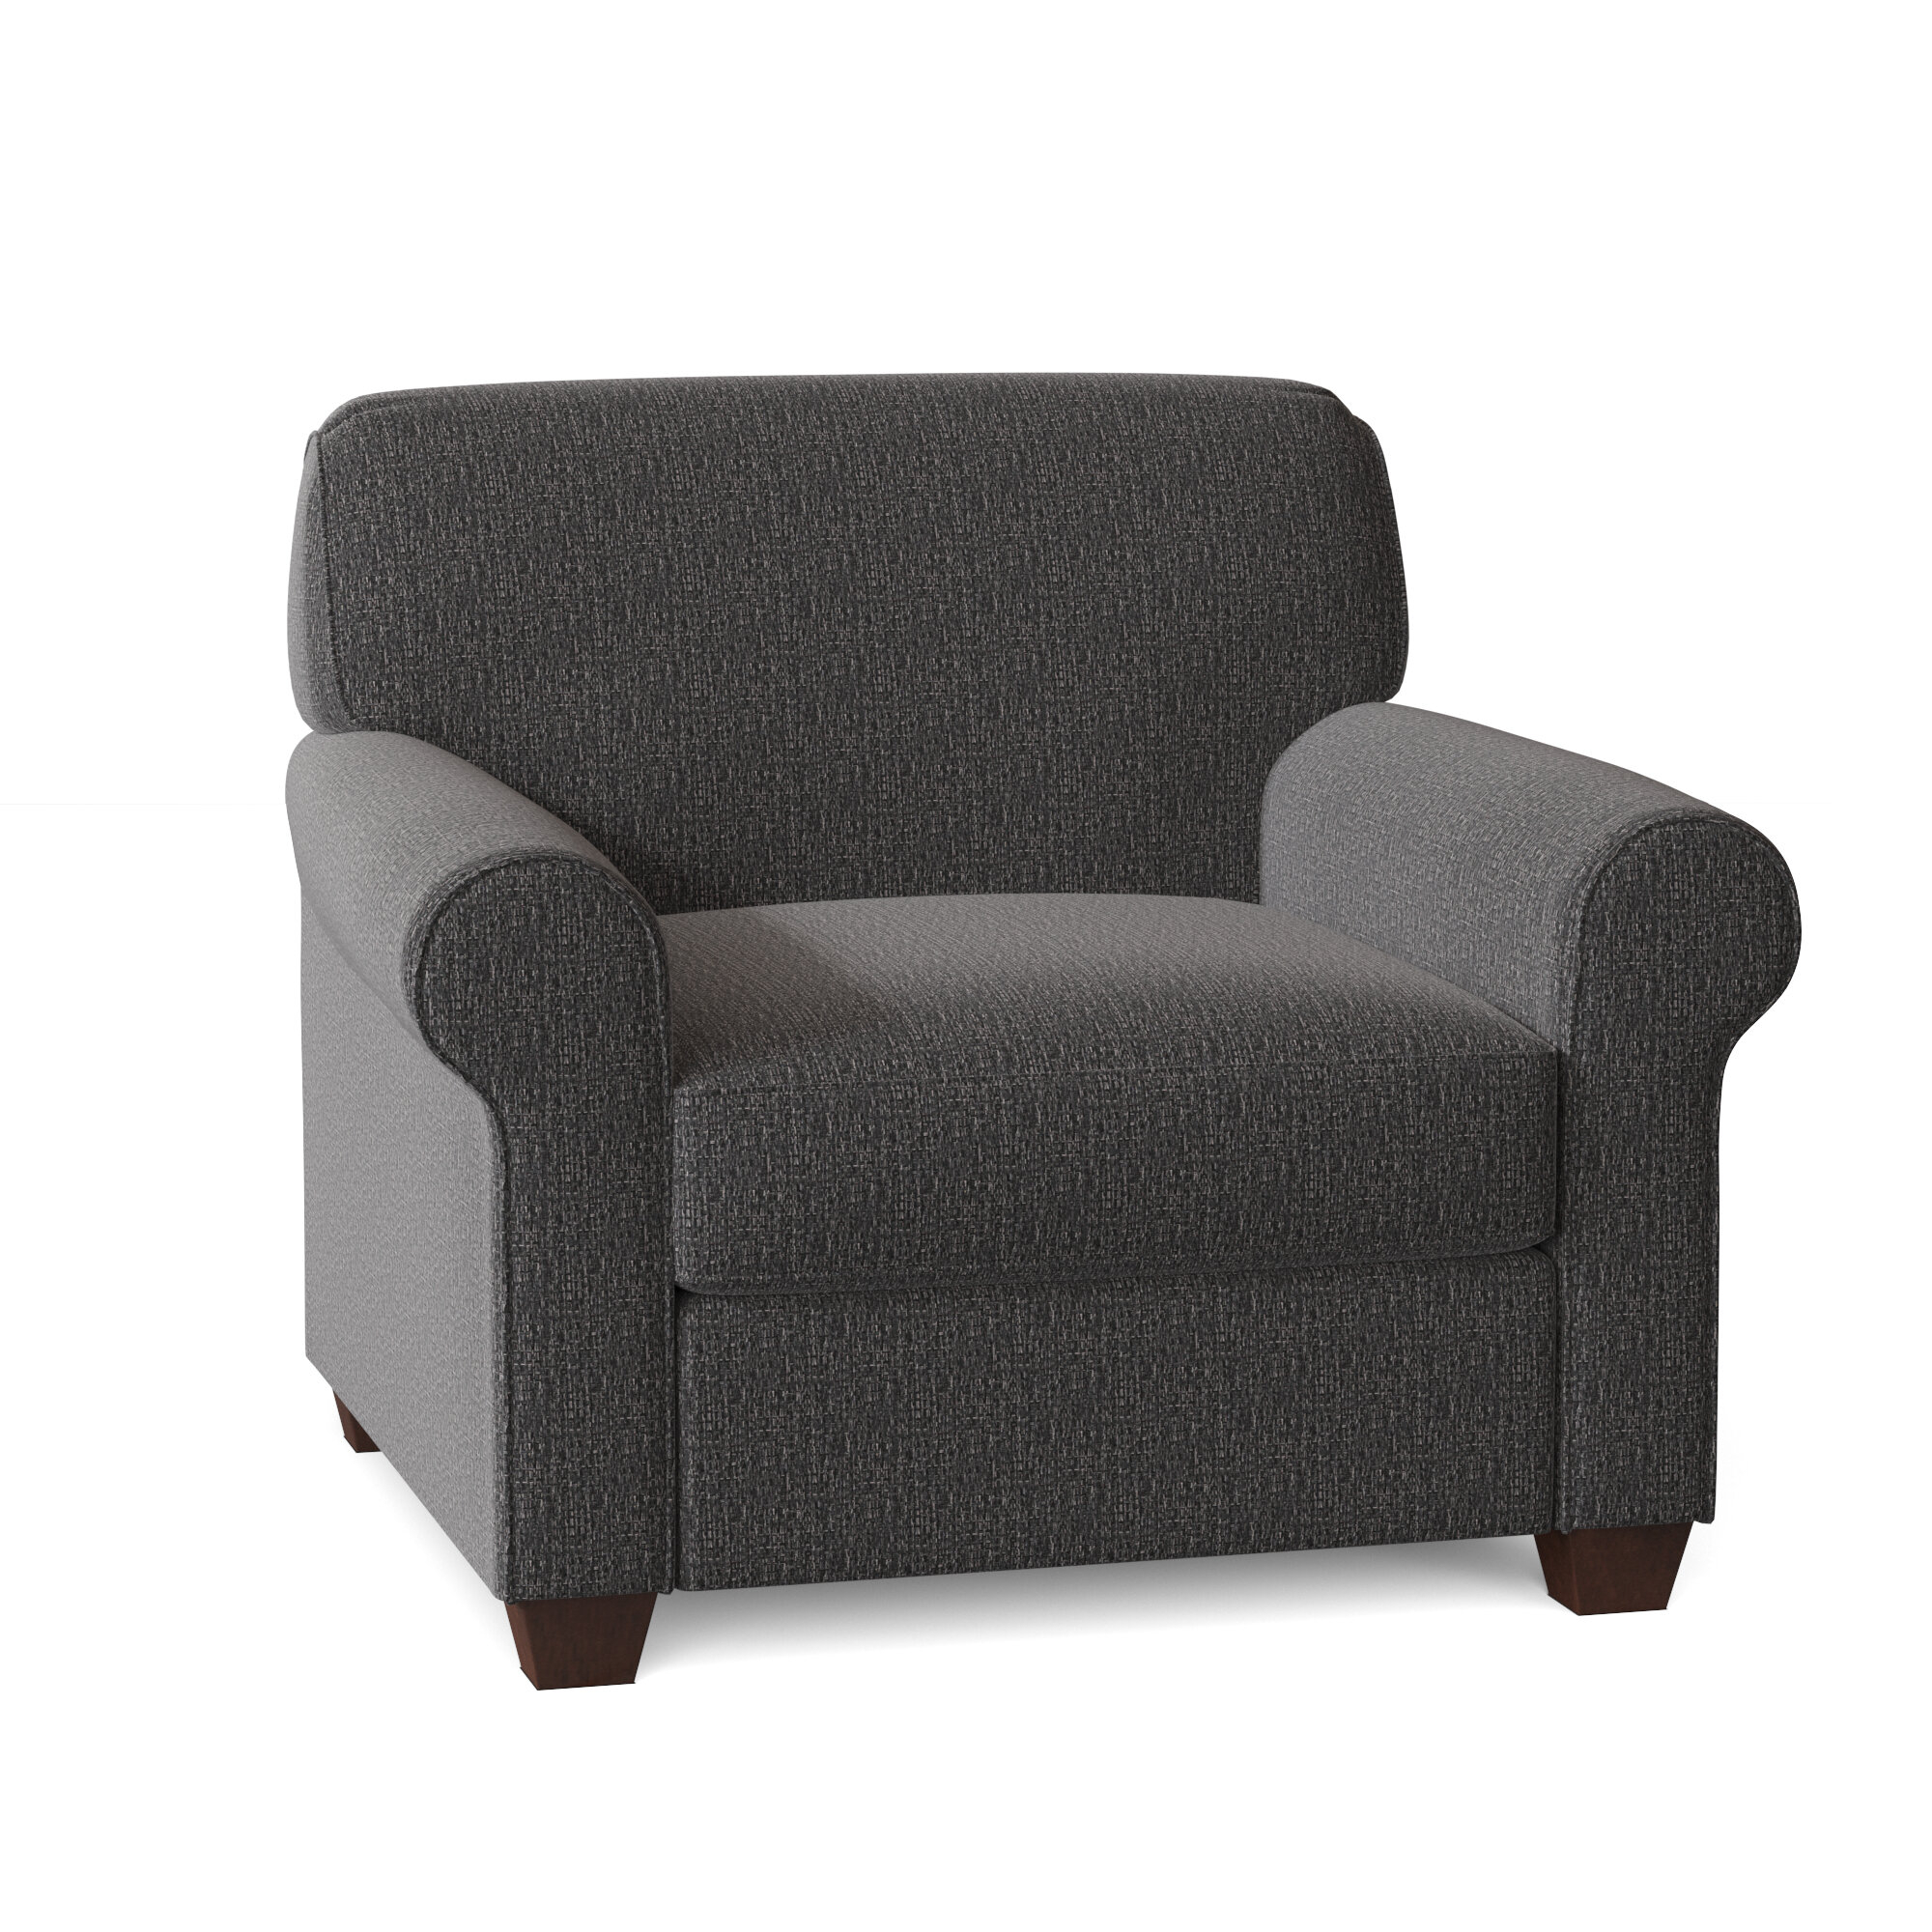 Black Silver Accent Chairs You'Ll Love In 2021 | Wayfair Inside Brookhhurst Avina Armchairs (View 5 of 15)